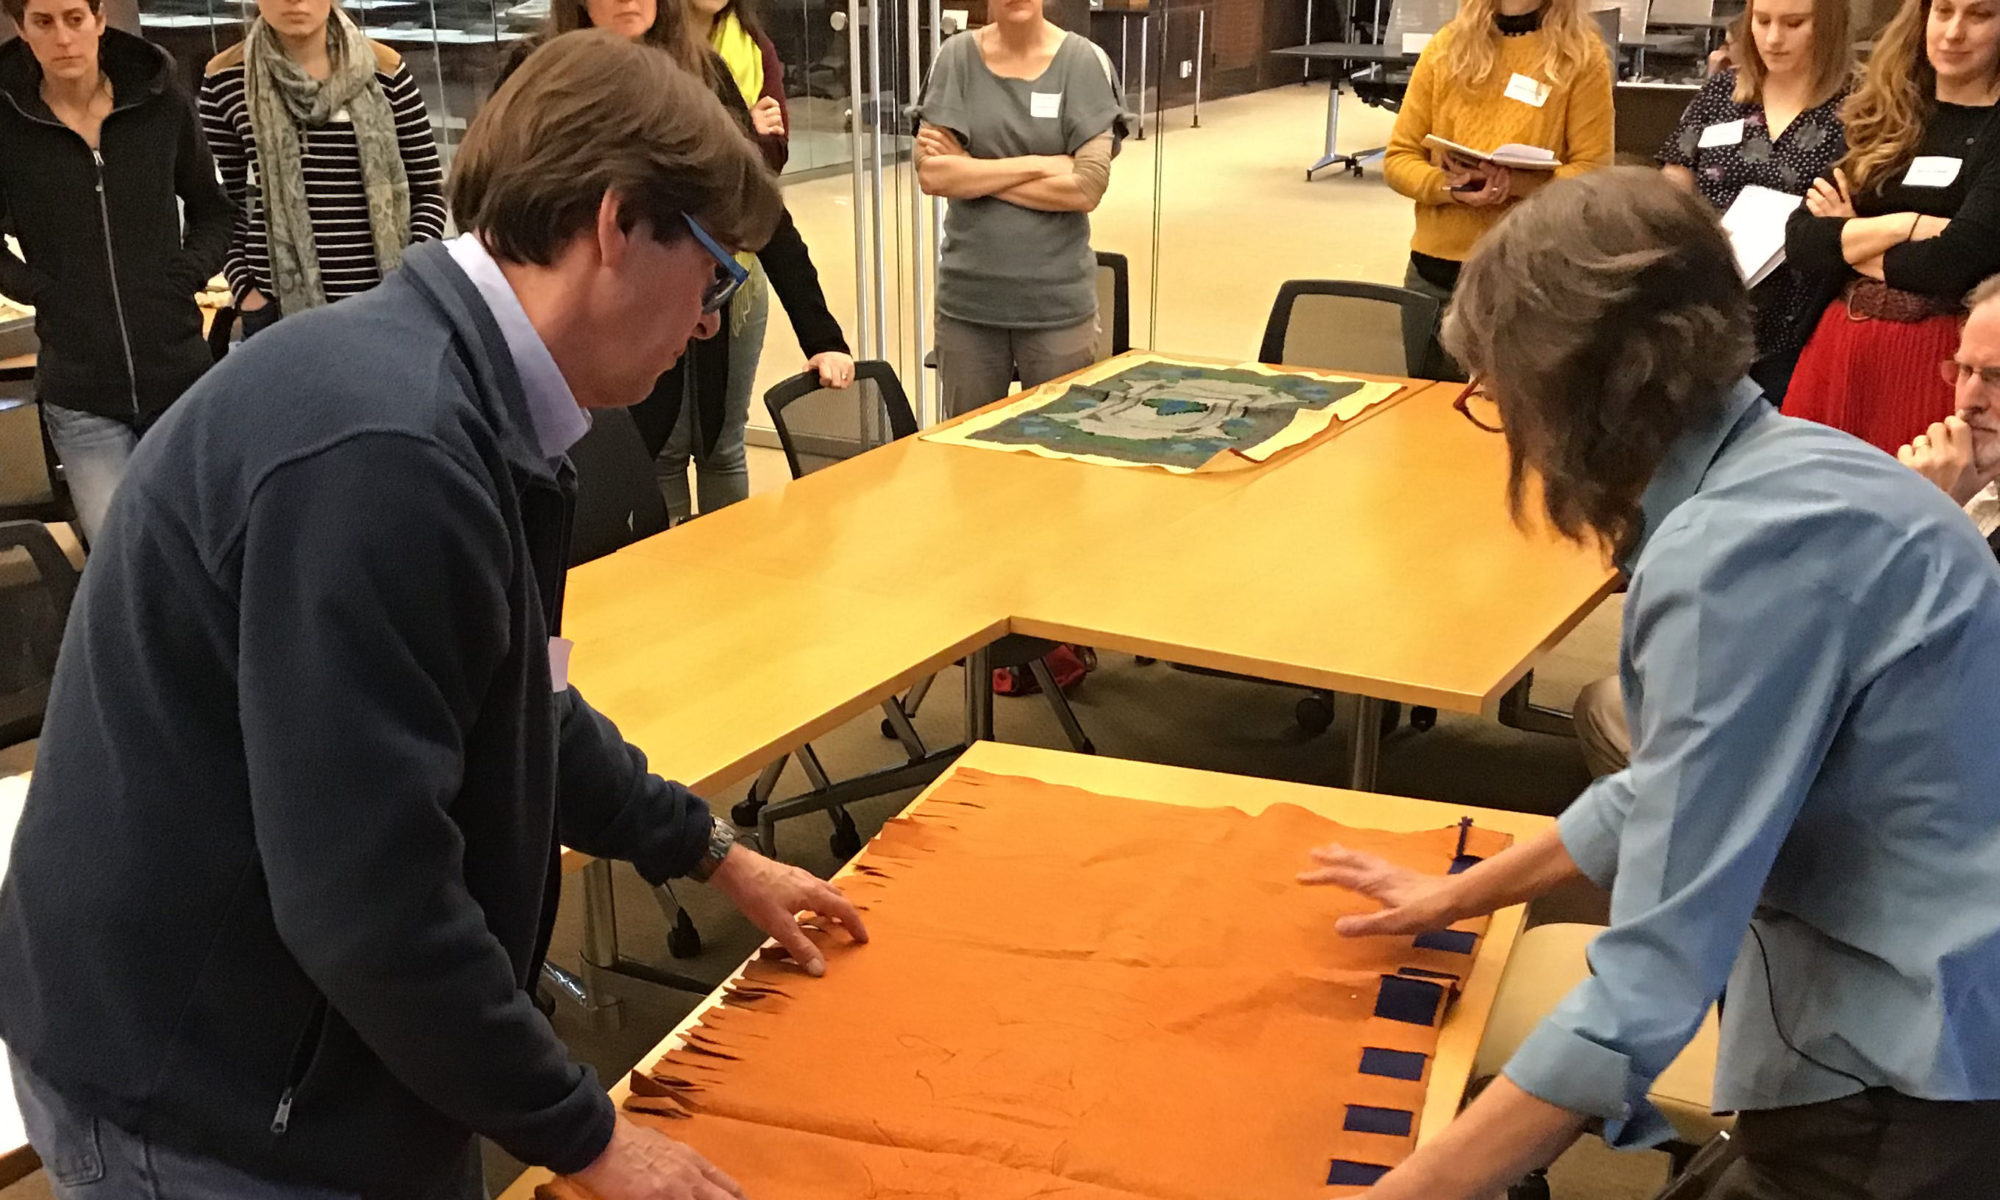 Conservator David Stokoe and guest speaker Deborah Trupin smooth out an orange and blue banner lying on a table.